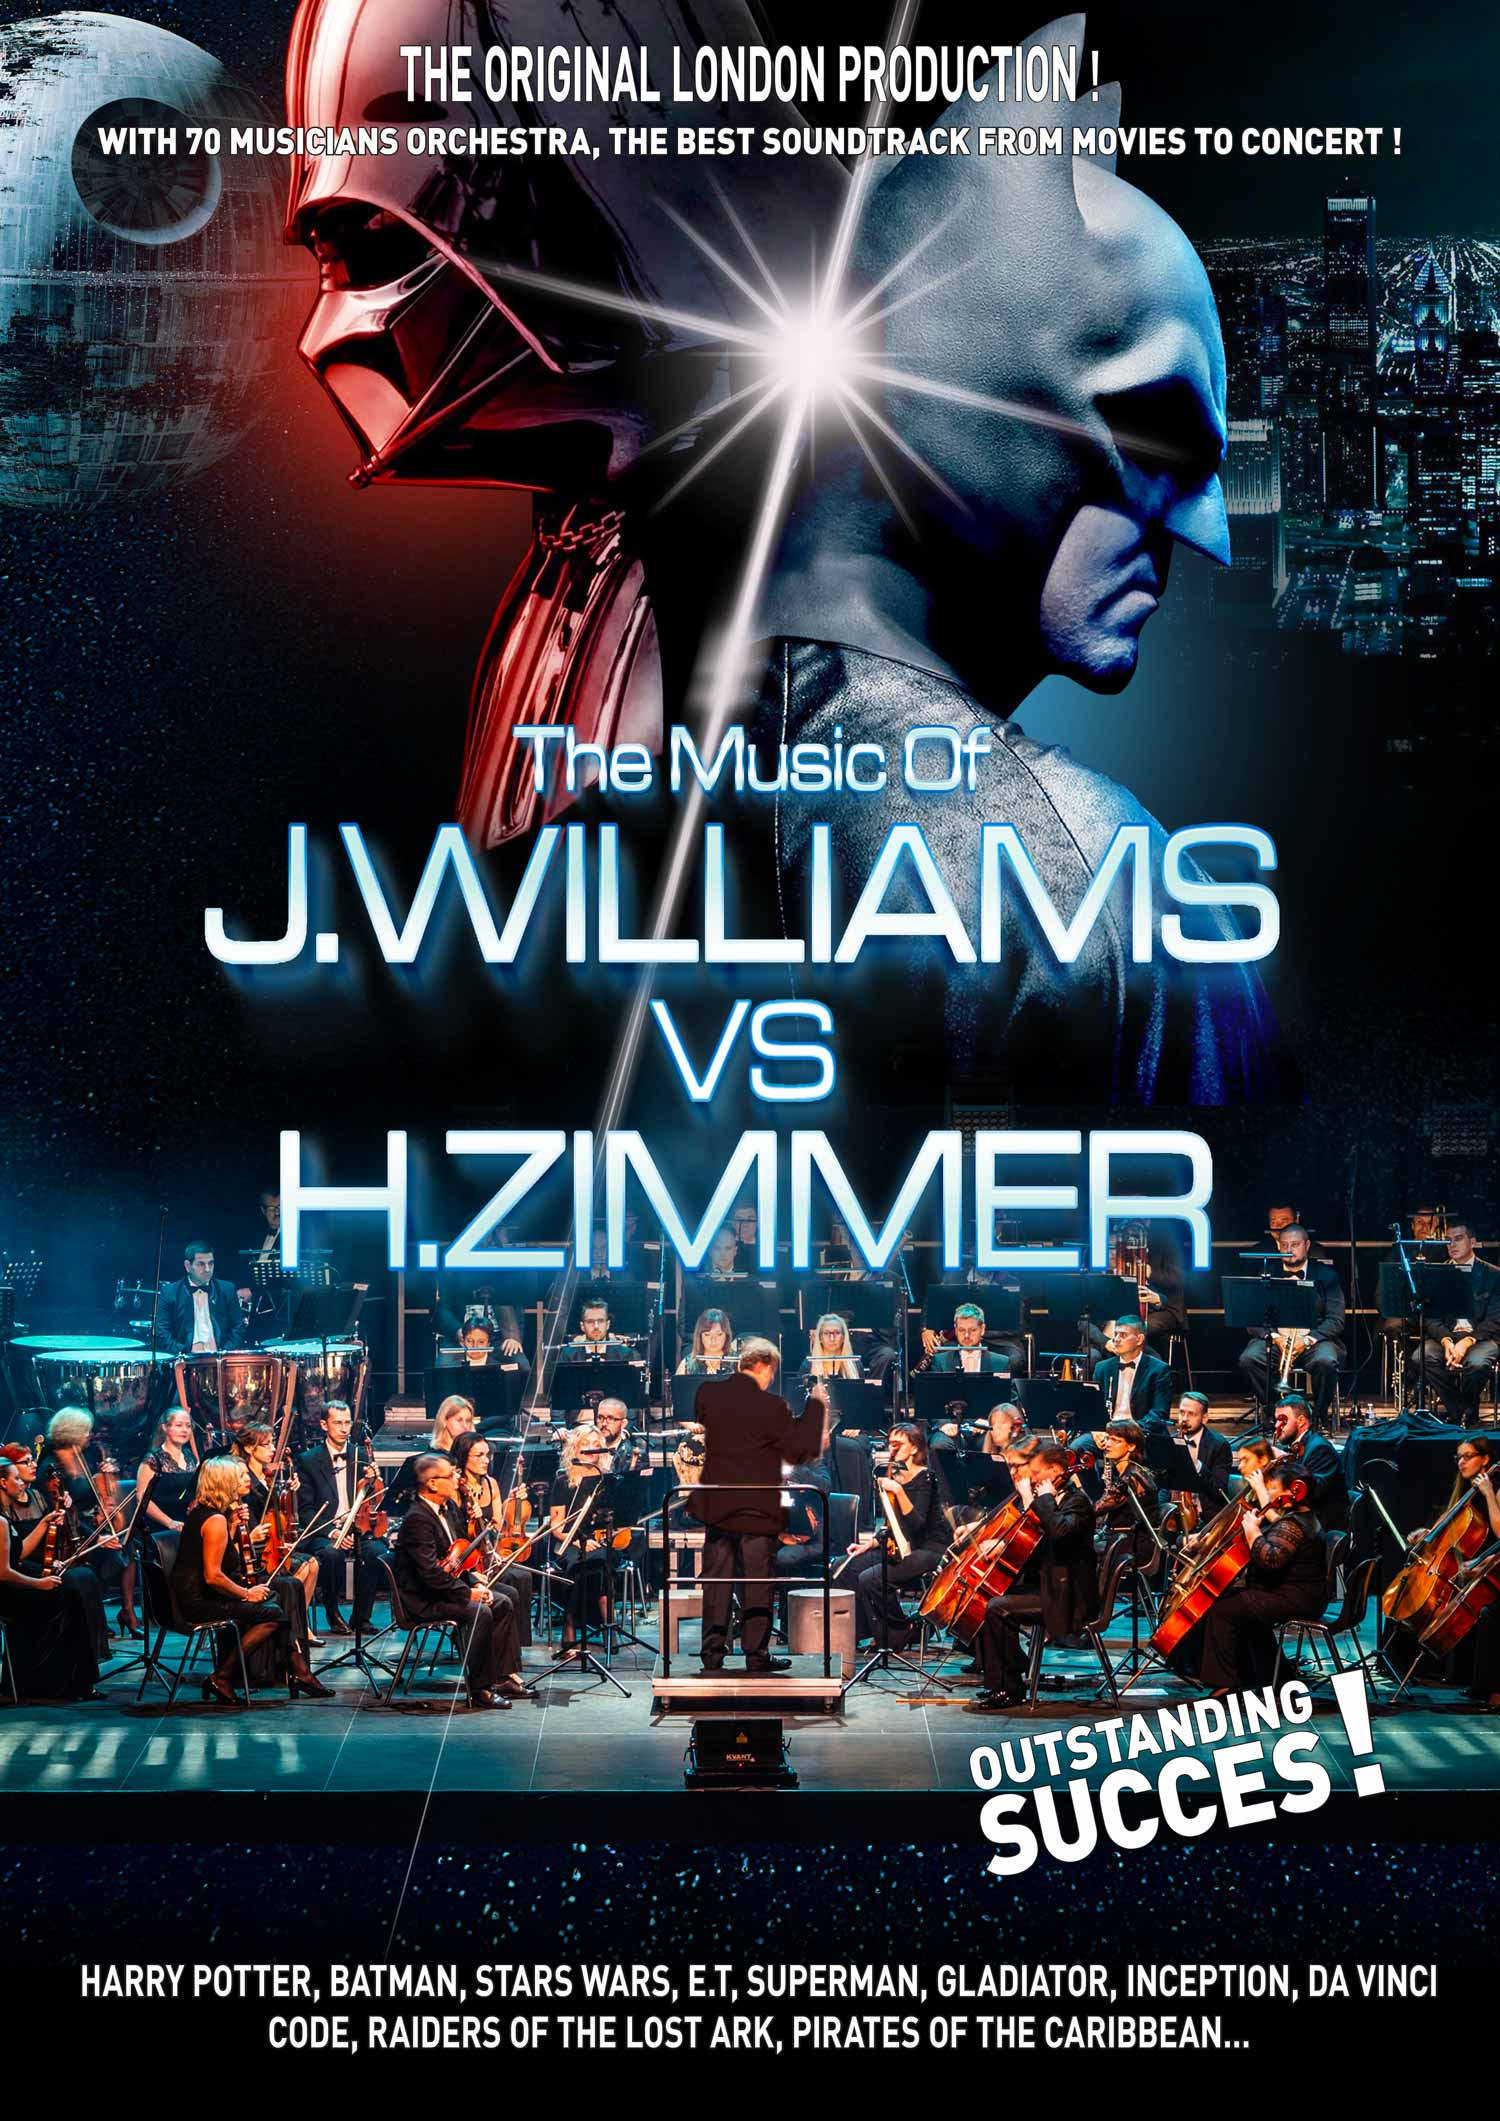 Hans Zimmer VS John Williams